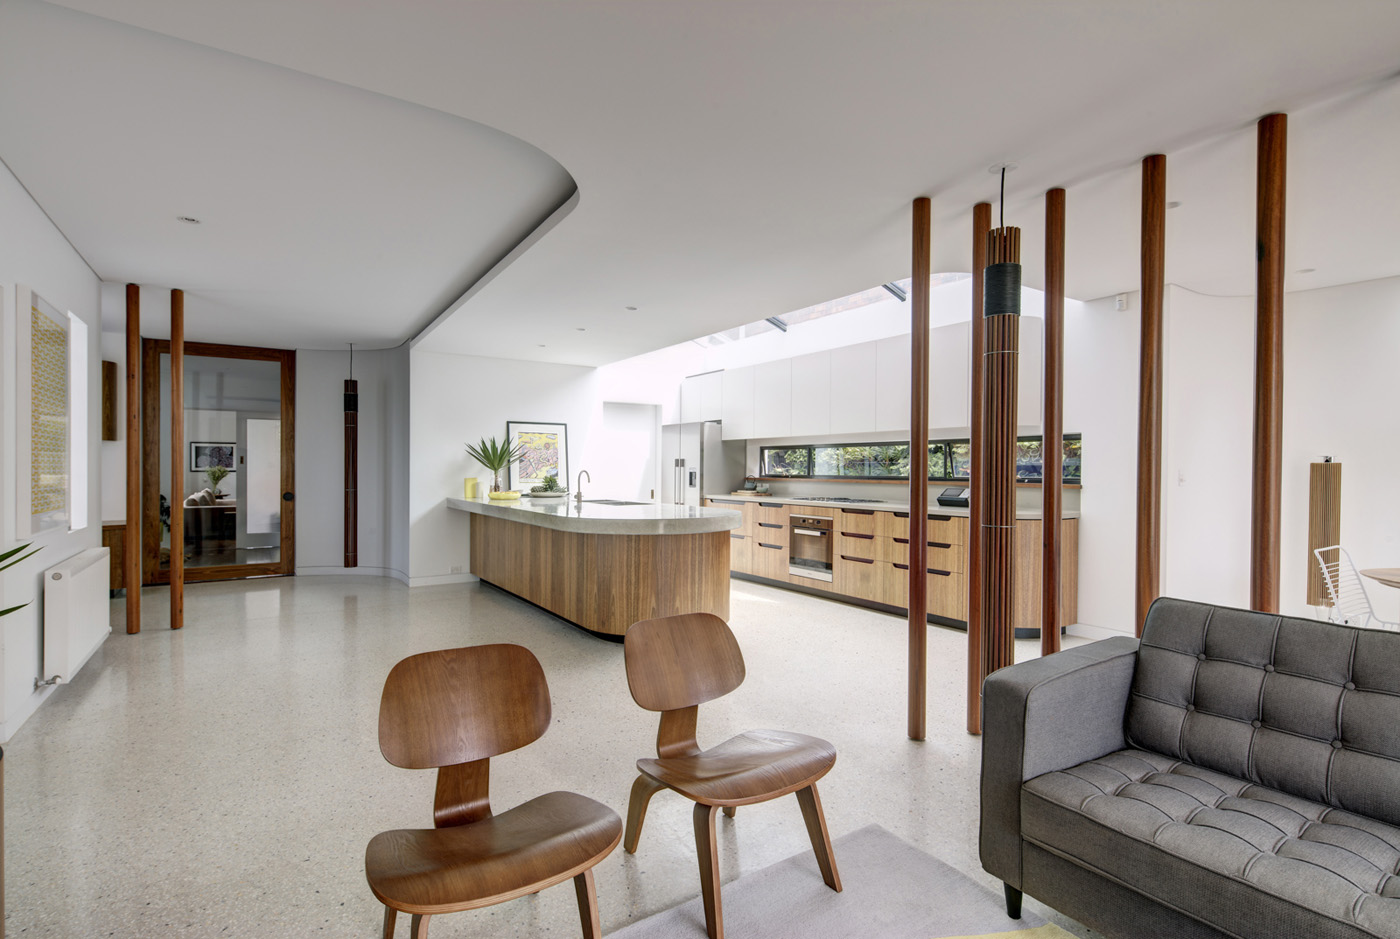 Dover Heights Pendants by award winning Sydney firm Sam Crawford Architects. Light filled minimal interior.